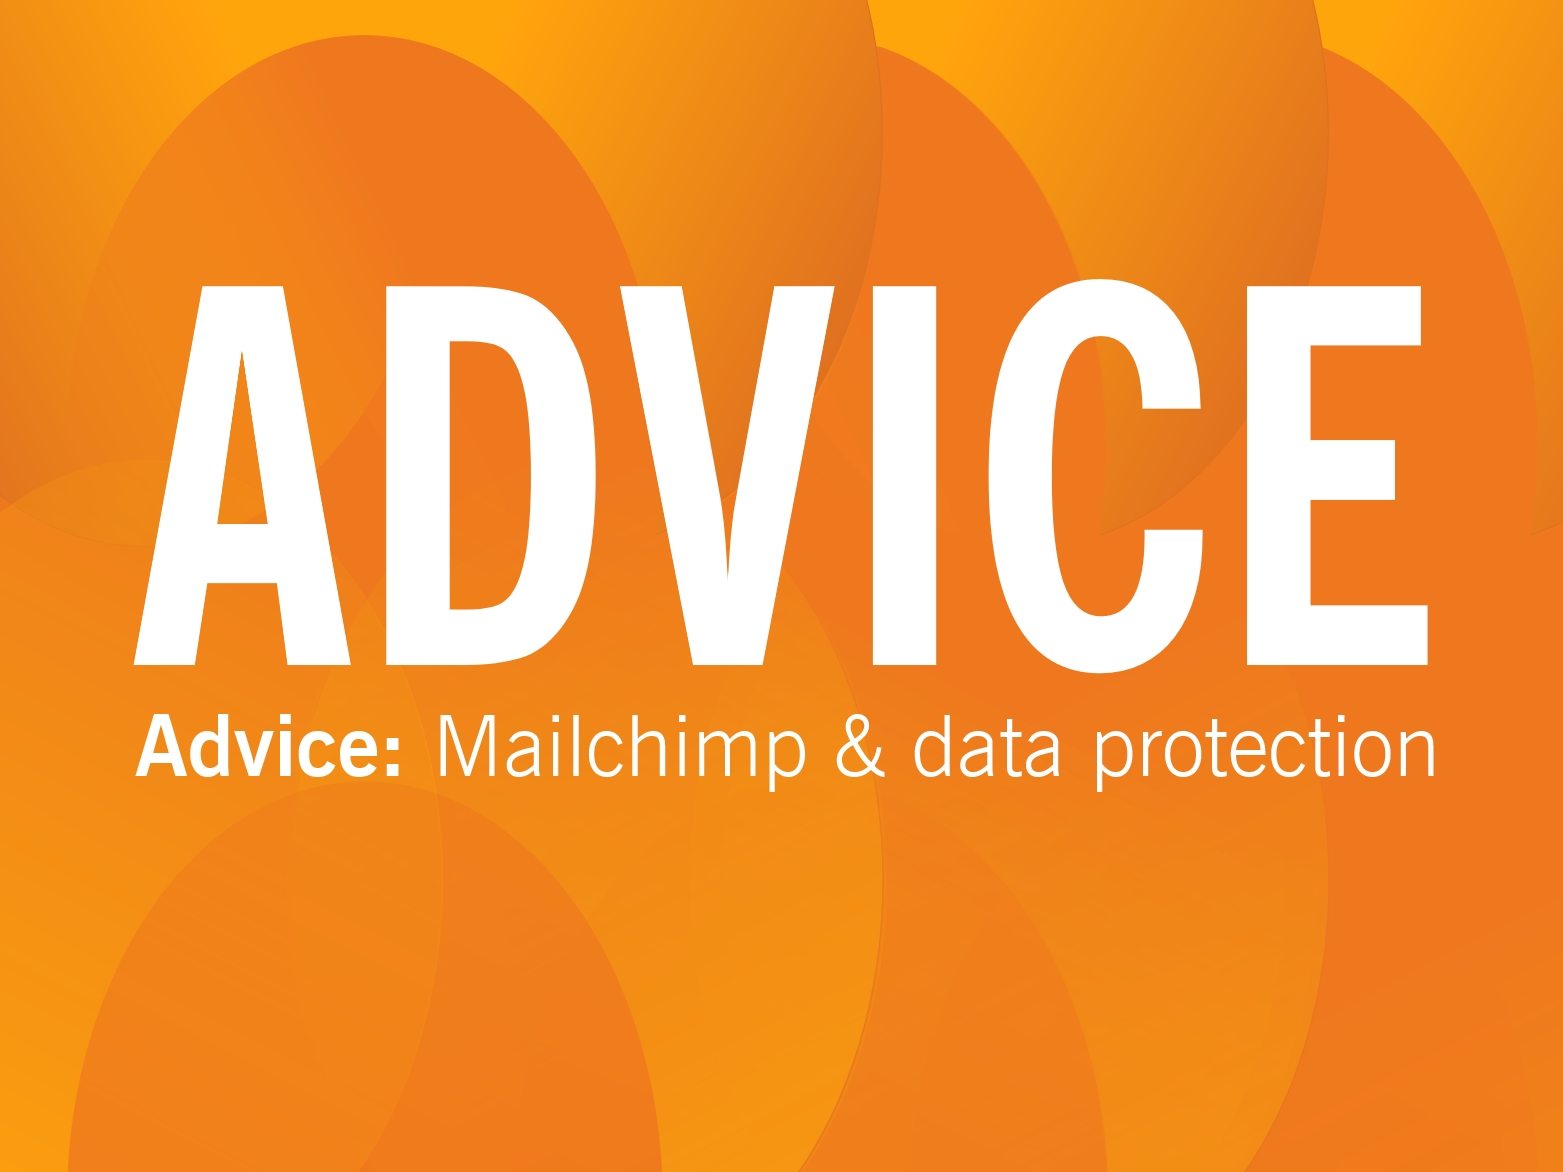 ADVICE: Updating your MailChimp account to comply with data protection laws